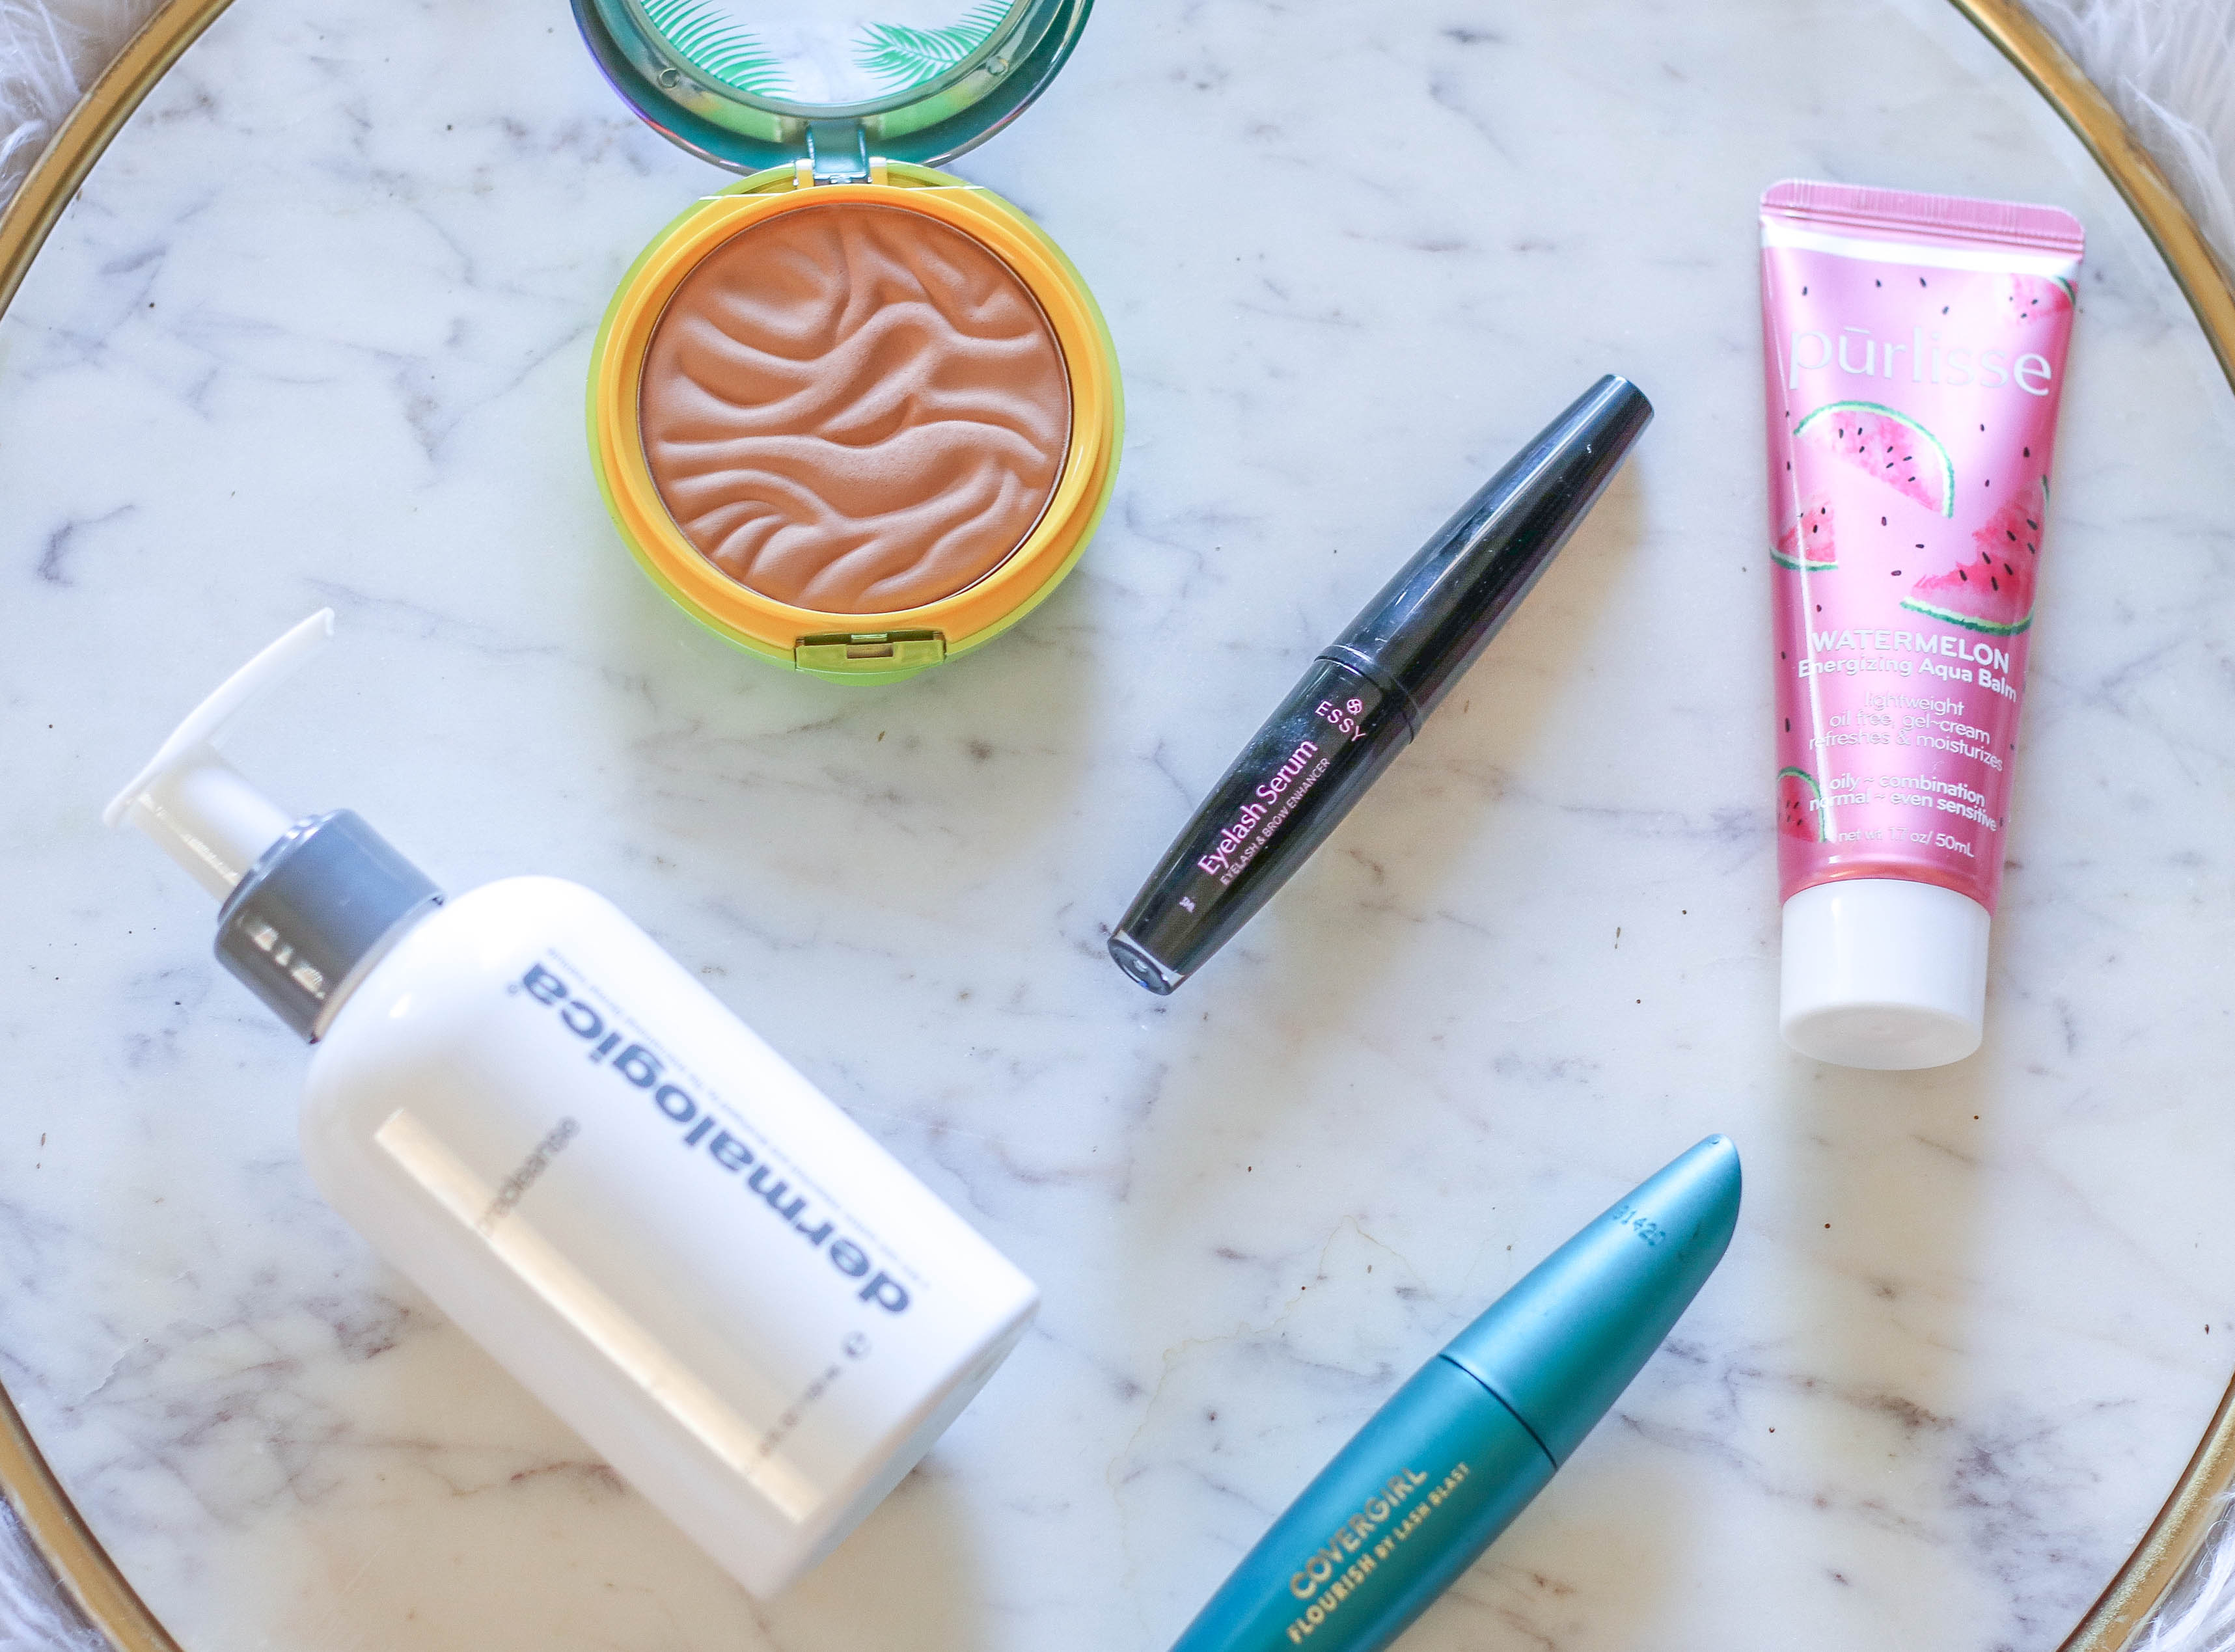 beauty product hits and misses #beautyproducts #beautyfavorites #makeup #skincare